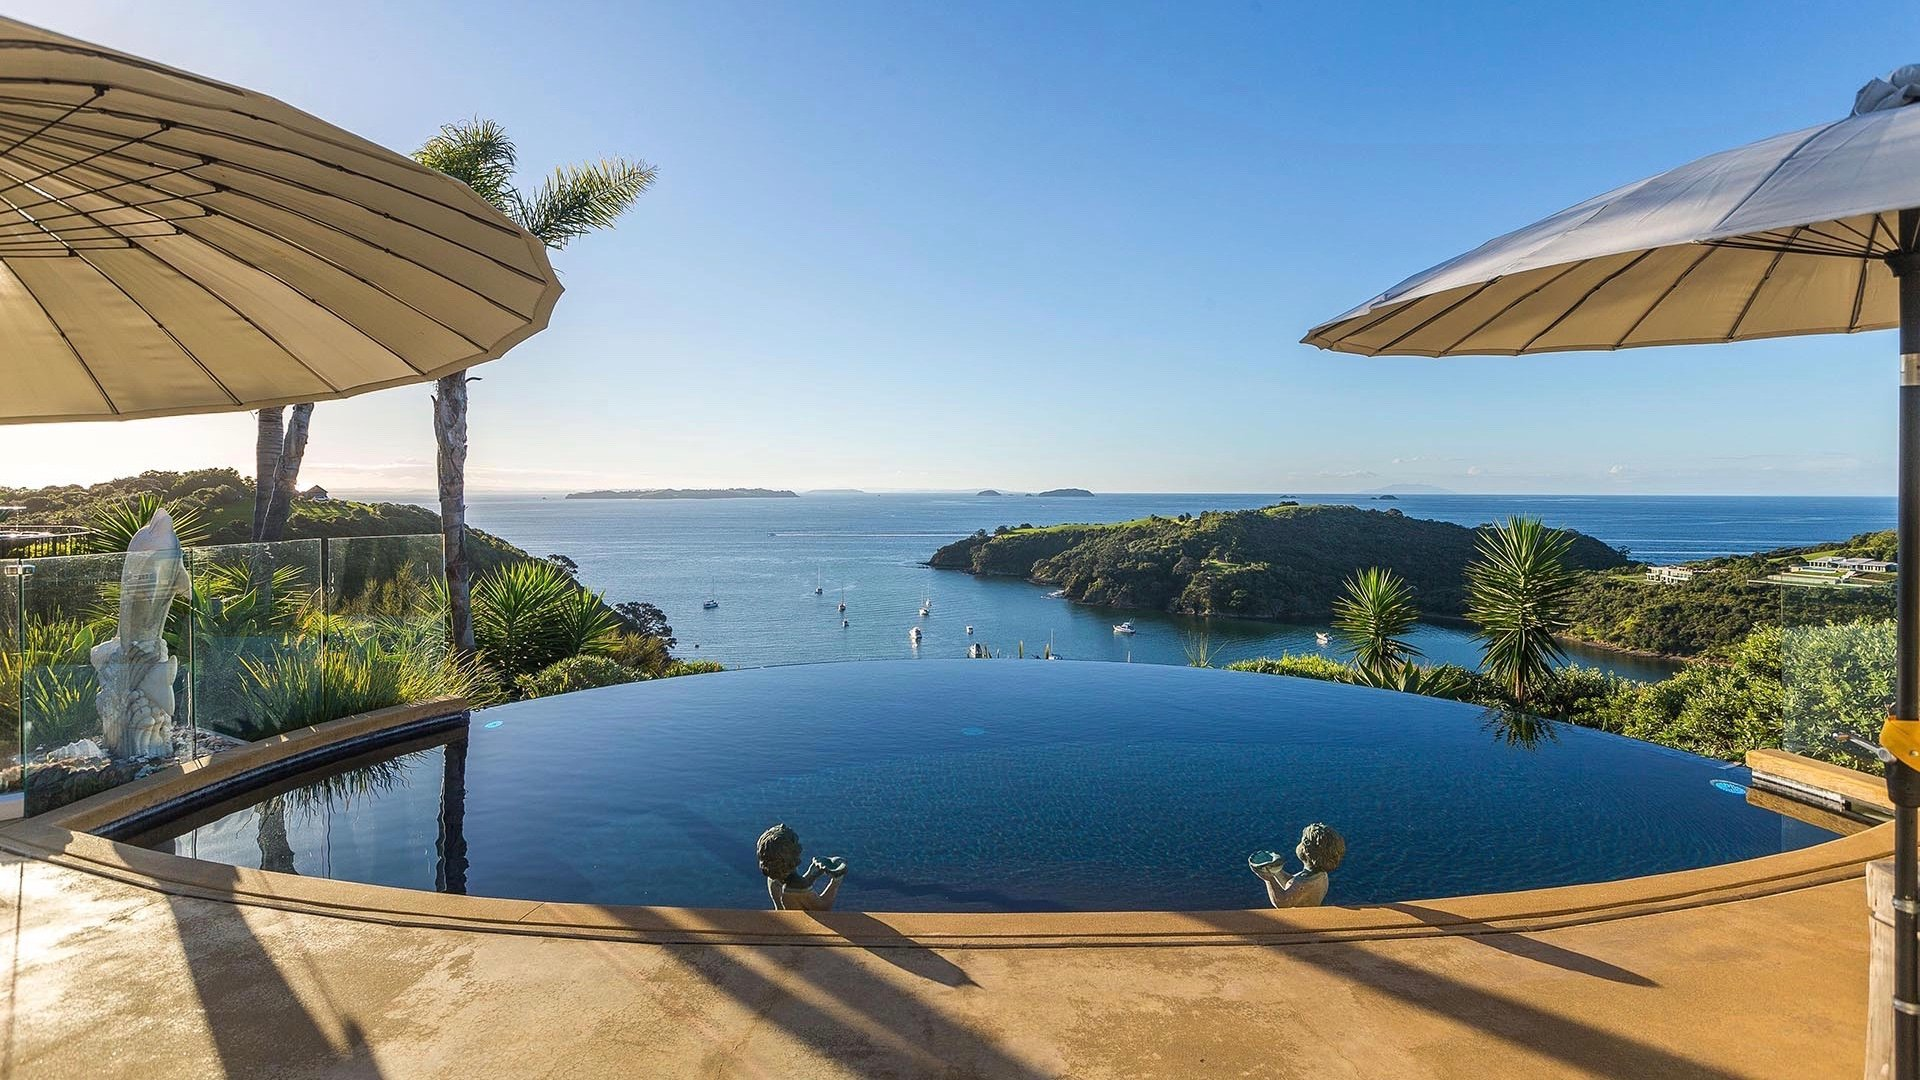 Incredible view of Hauraki Gulf from infinity pool at 5 Star Delamore Lodge Hotel on Waiheke